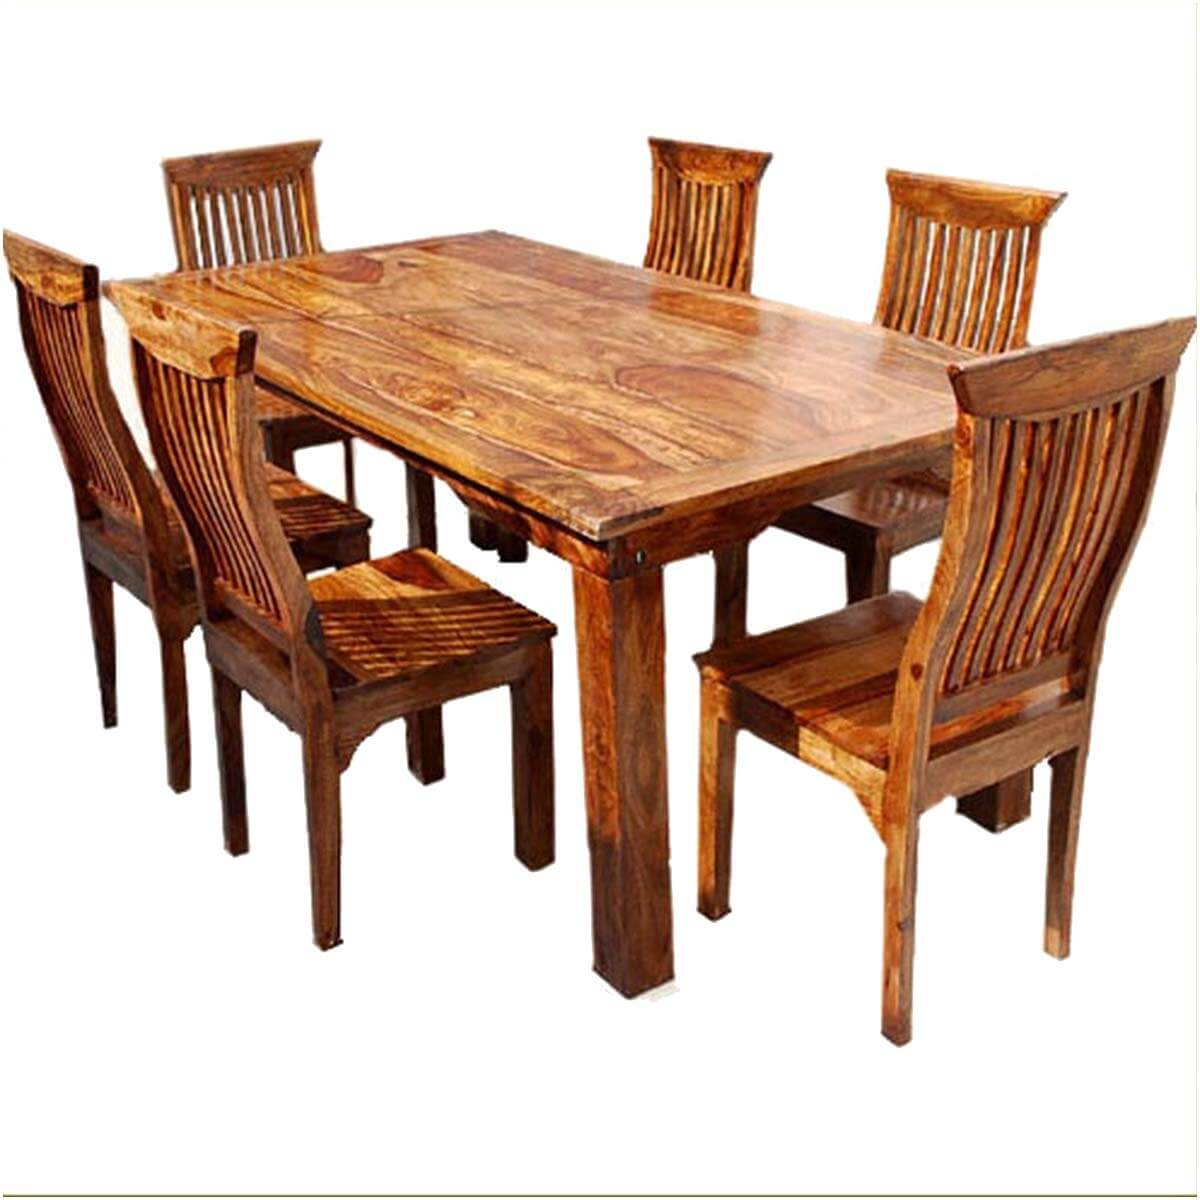 Dallas ranch solid wood rustic dining table chairs hutch set for Dining table set